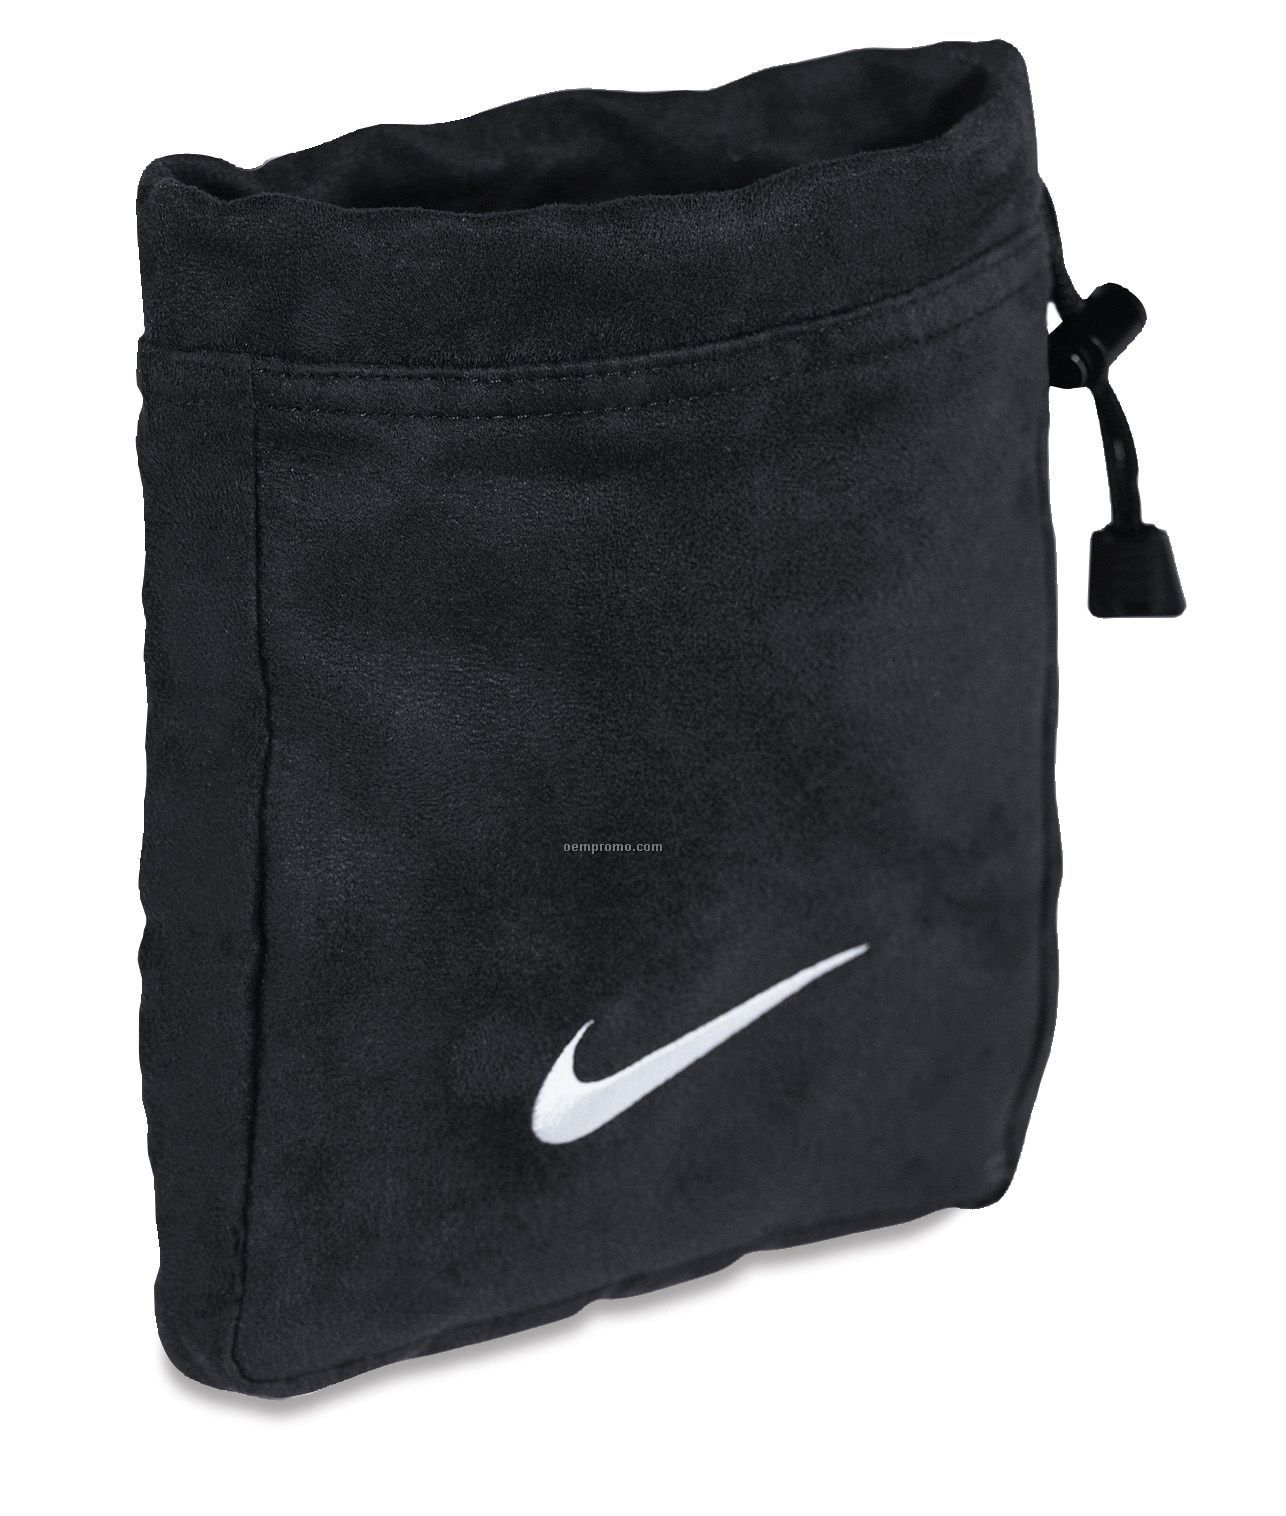 Nike One Tour Golf Ball (2010 Model) - 3 Pack Drawstring Pouch